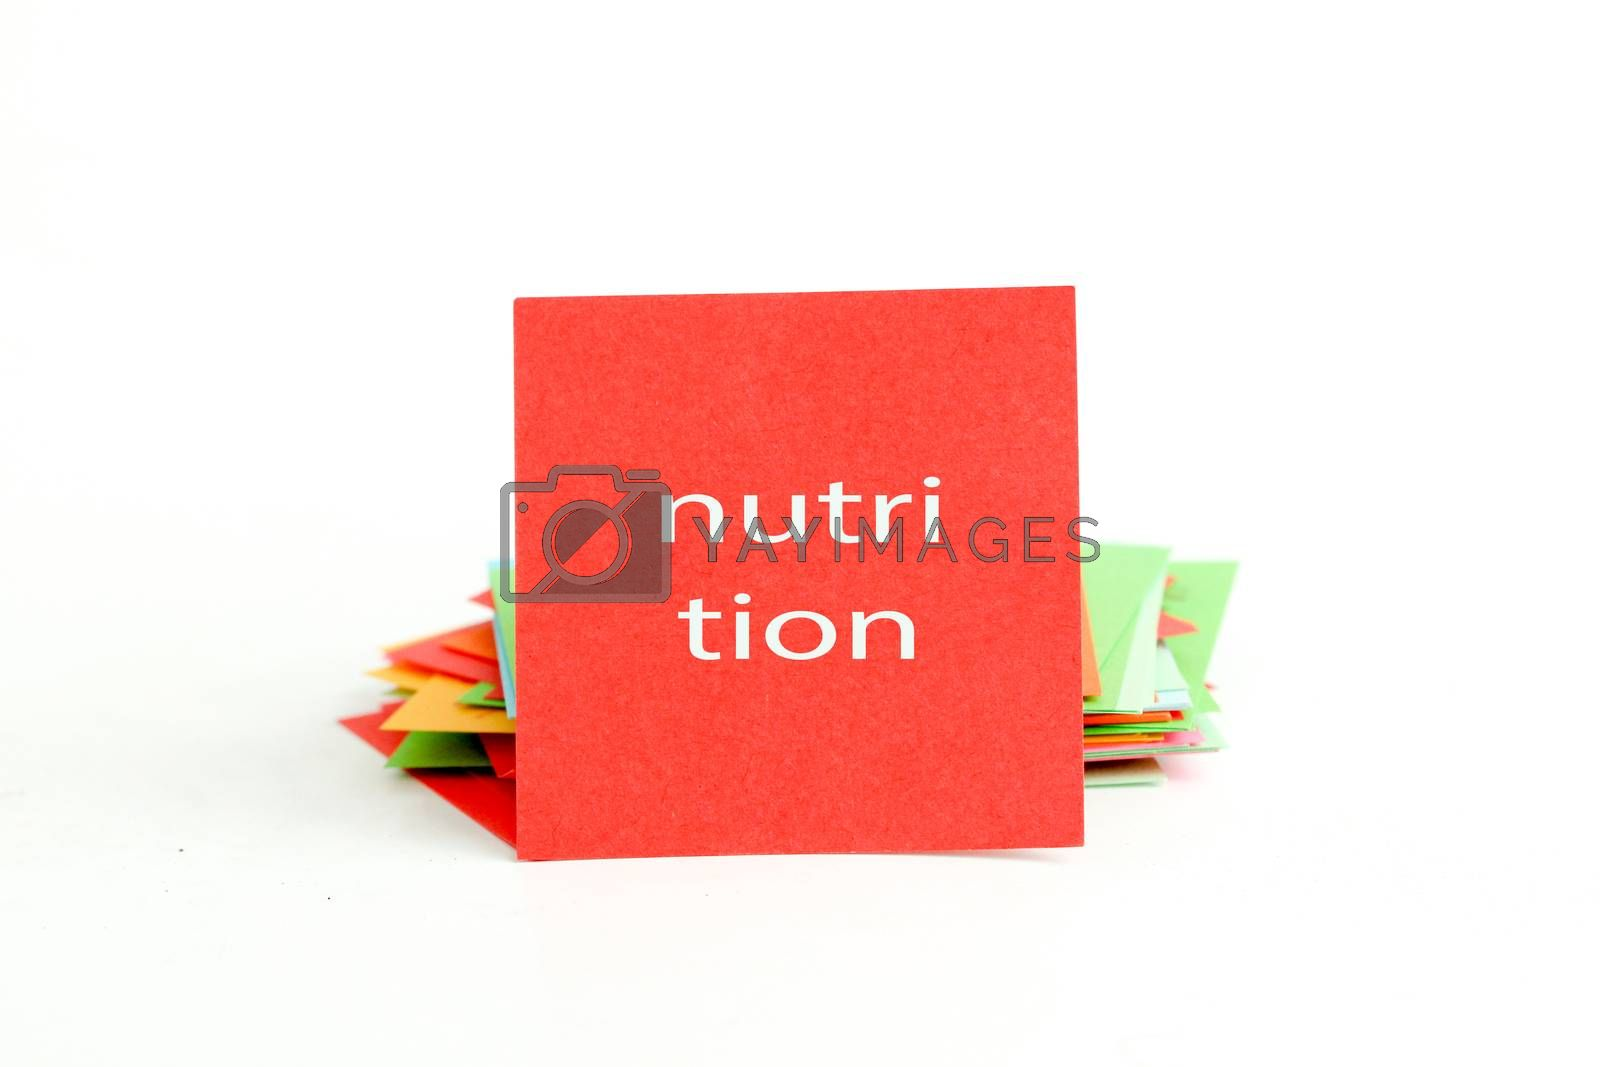 picture of a red note paper with text nutrition